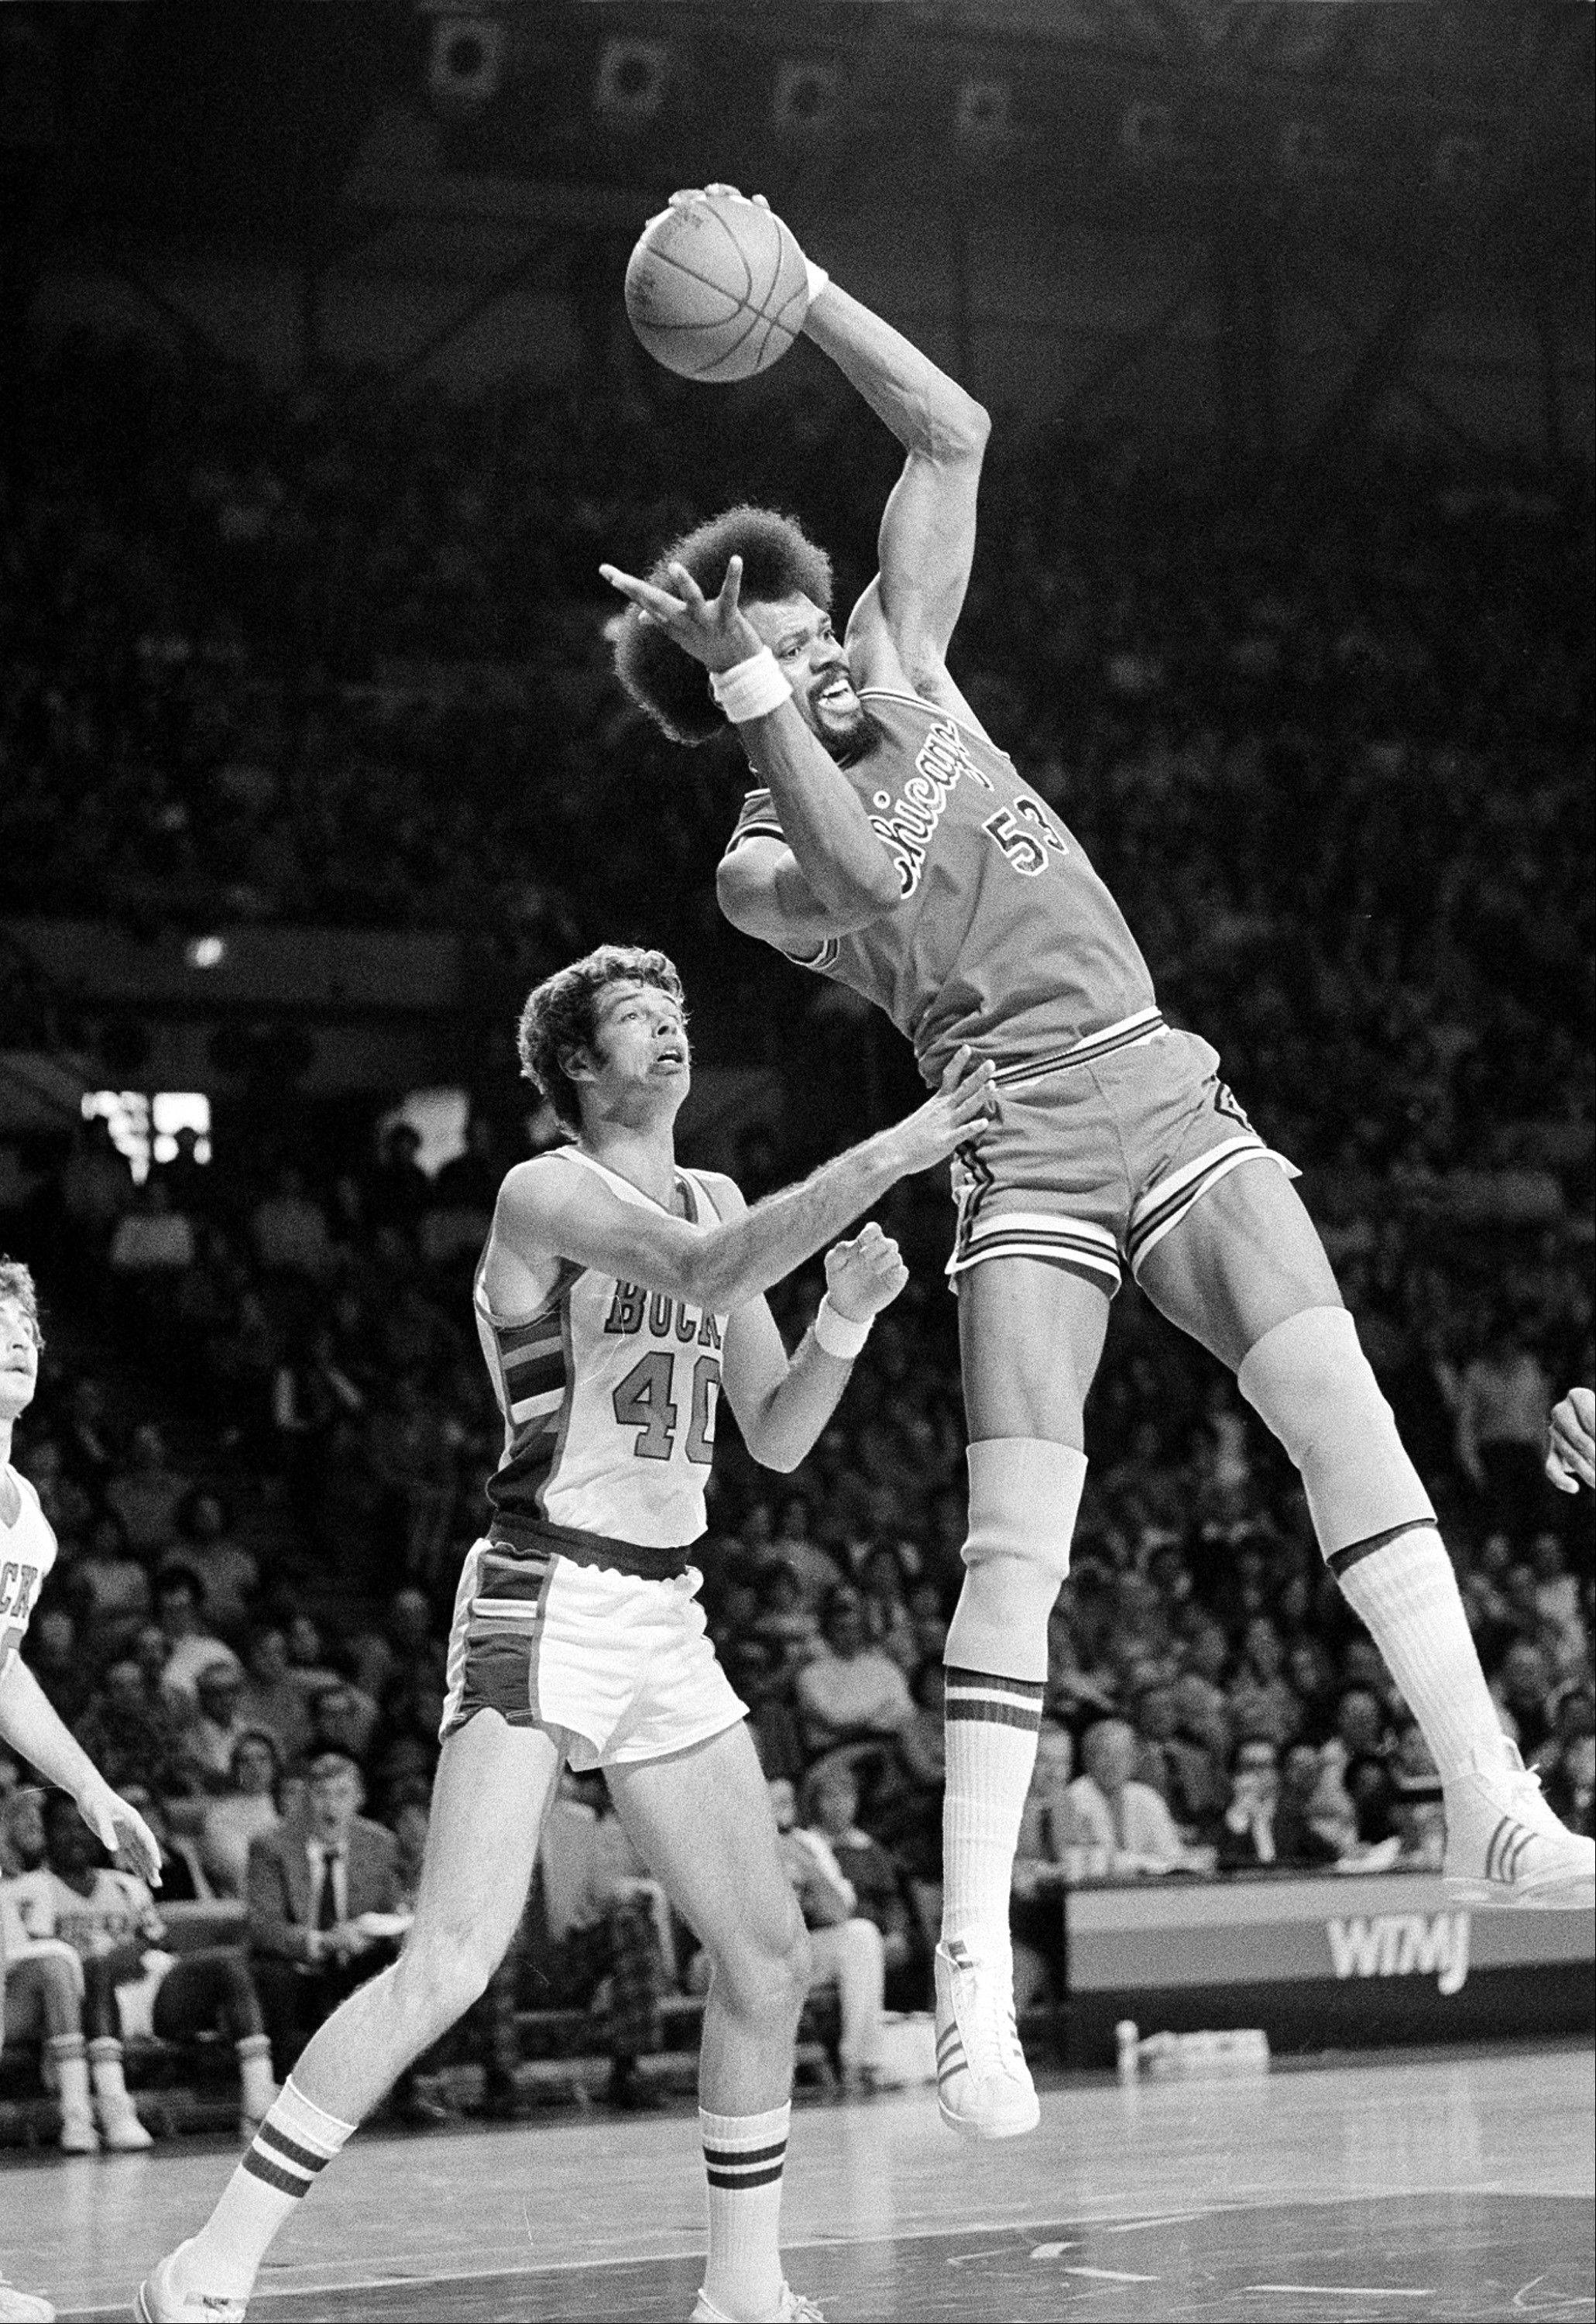 Chicago Bulls center Artis Gilmore leaps high and pulls down a pass in front of Milwaukee Bucks center John Gianelli during second quarter action in Milwaukee, Wis., Sunday, Jan. 22, 1978.